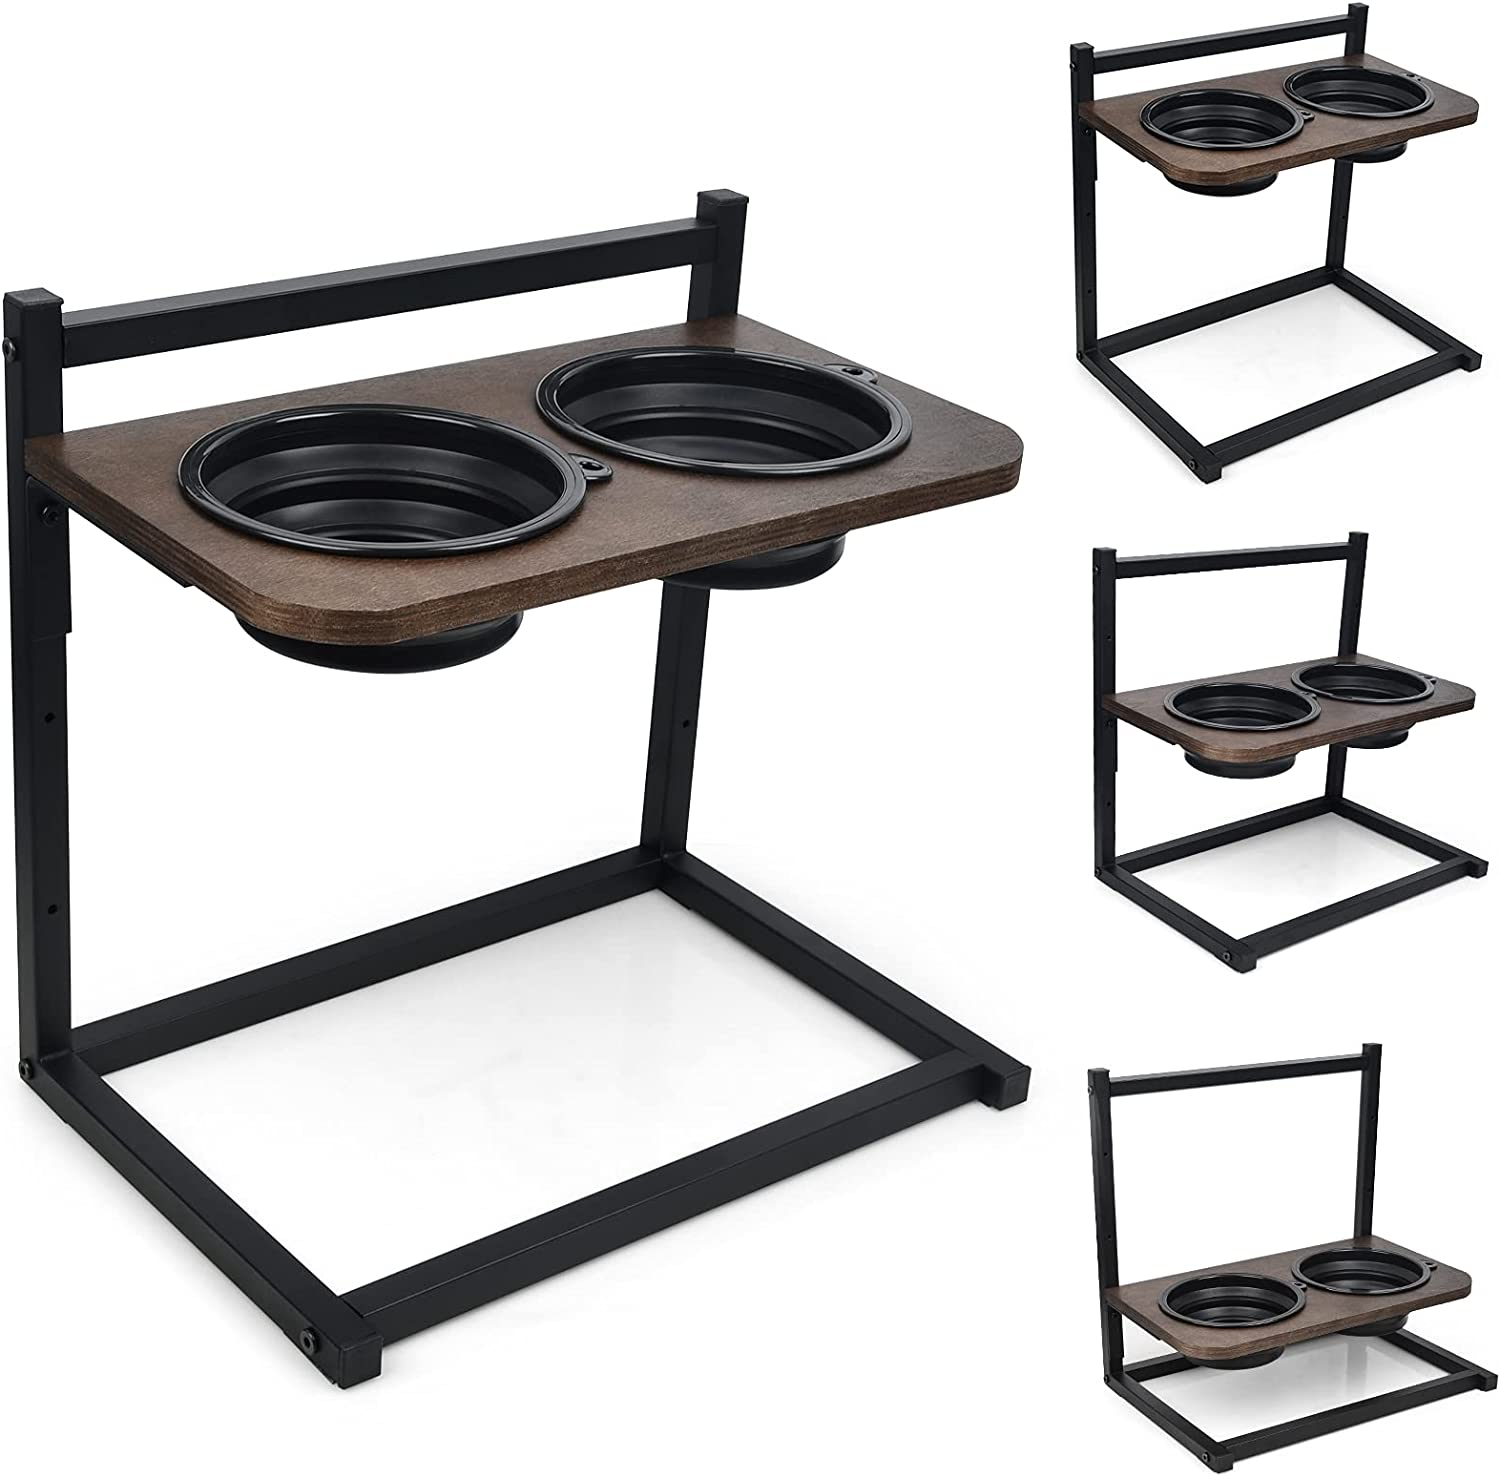 Emfogo Dog Cat Bowls Raised Dog Bowl Stand Feeder Adjustable Elevated 3 Heights5in 9in 13in with Double Collapsible Travel Bowls Raised Feeder for Small to Large Dogs and Cats 16.5x16 inch